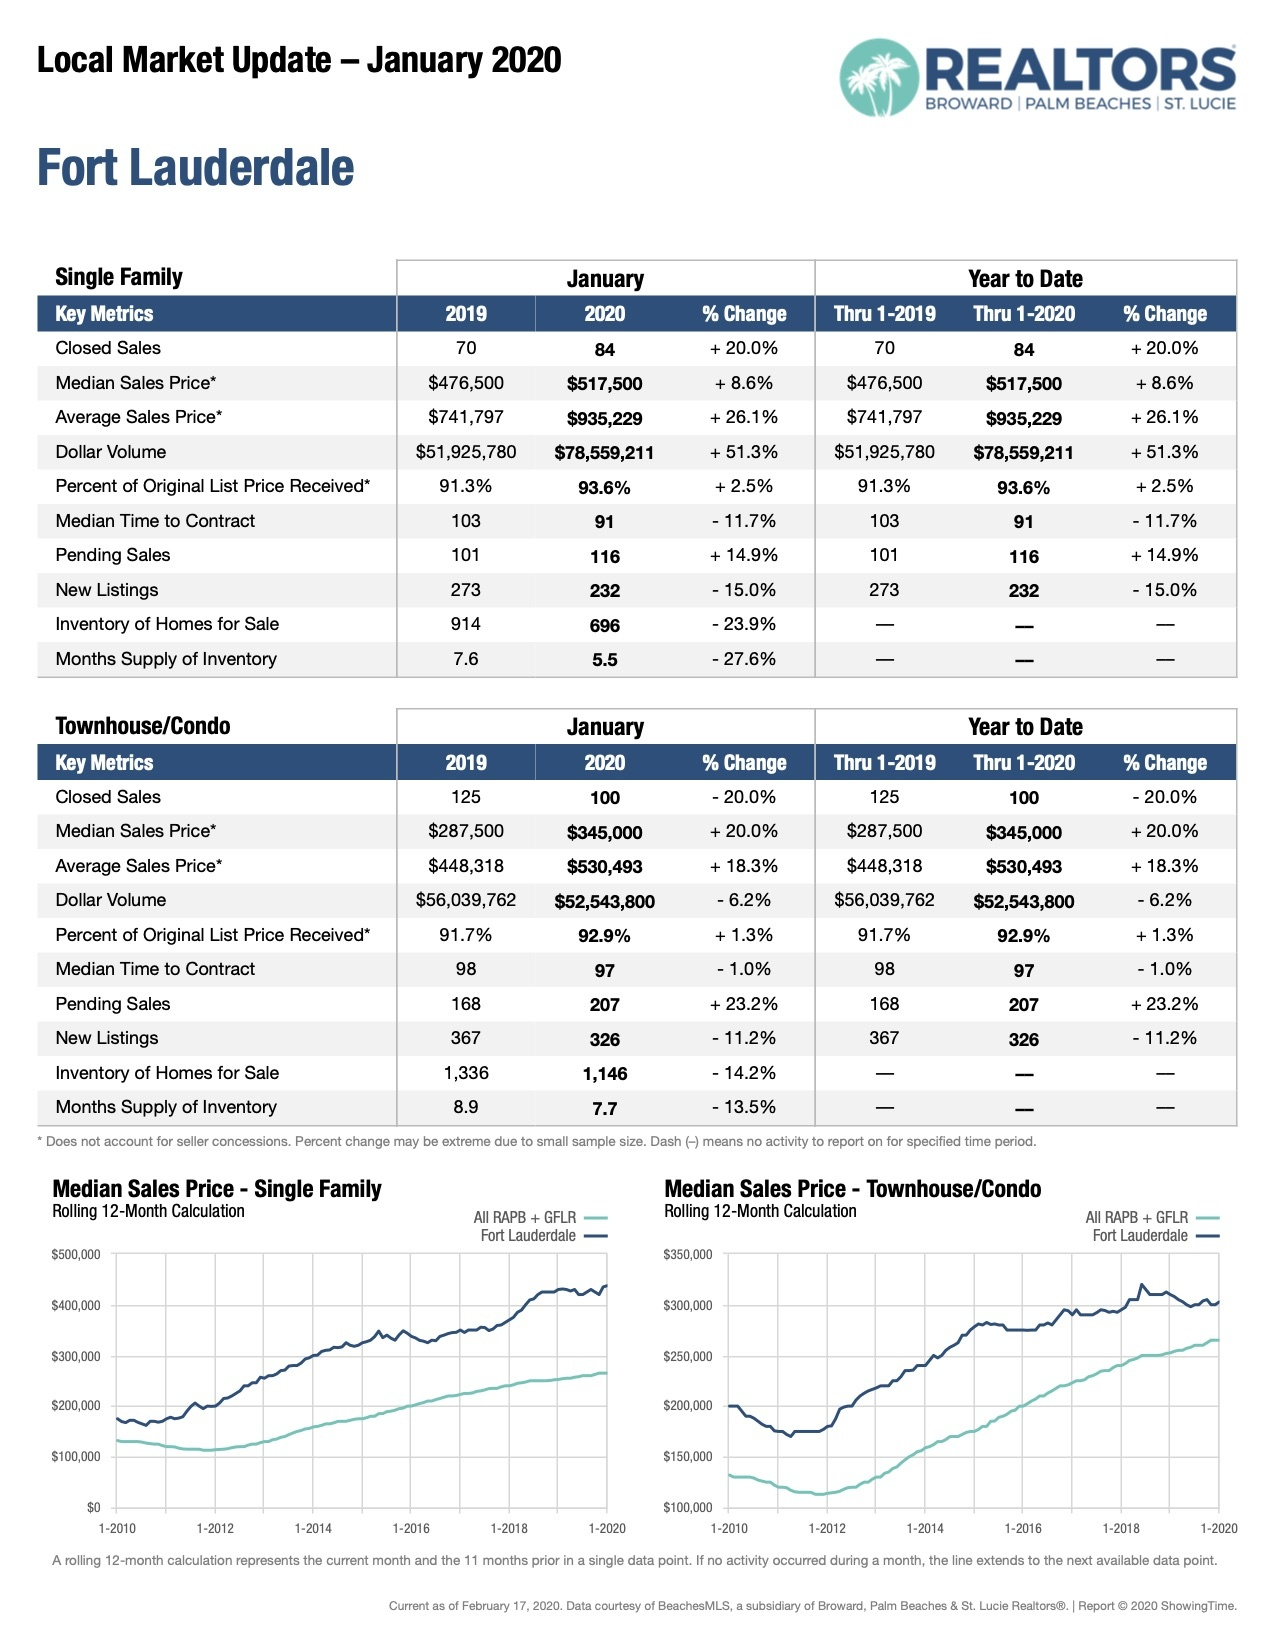 Fort Lauderdale Real Estate | January 2020 Market Update